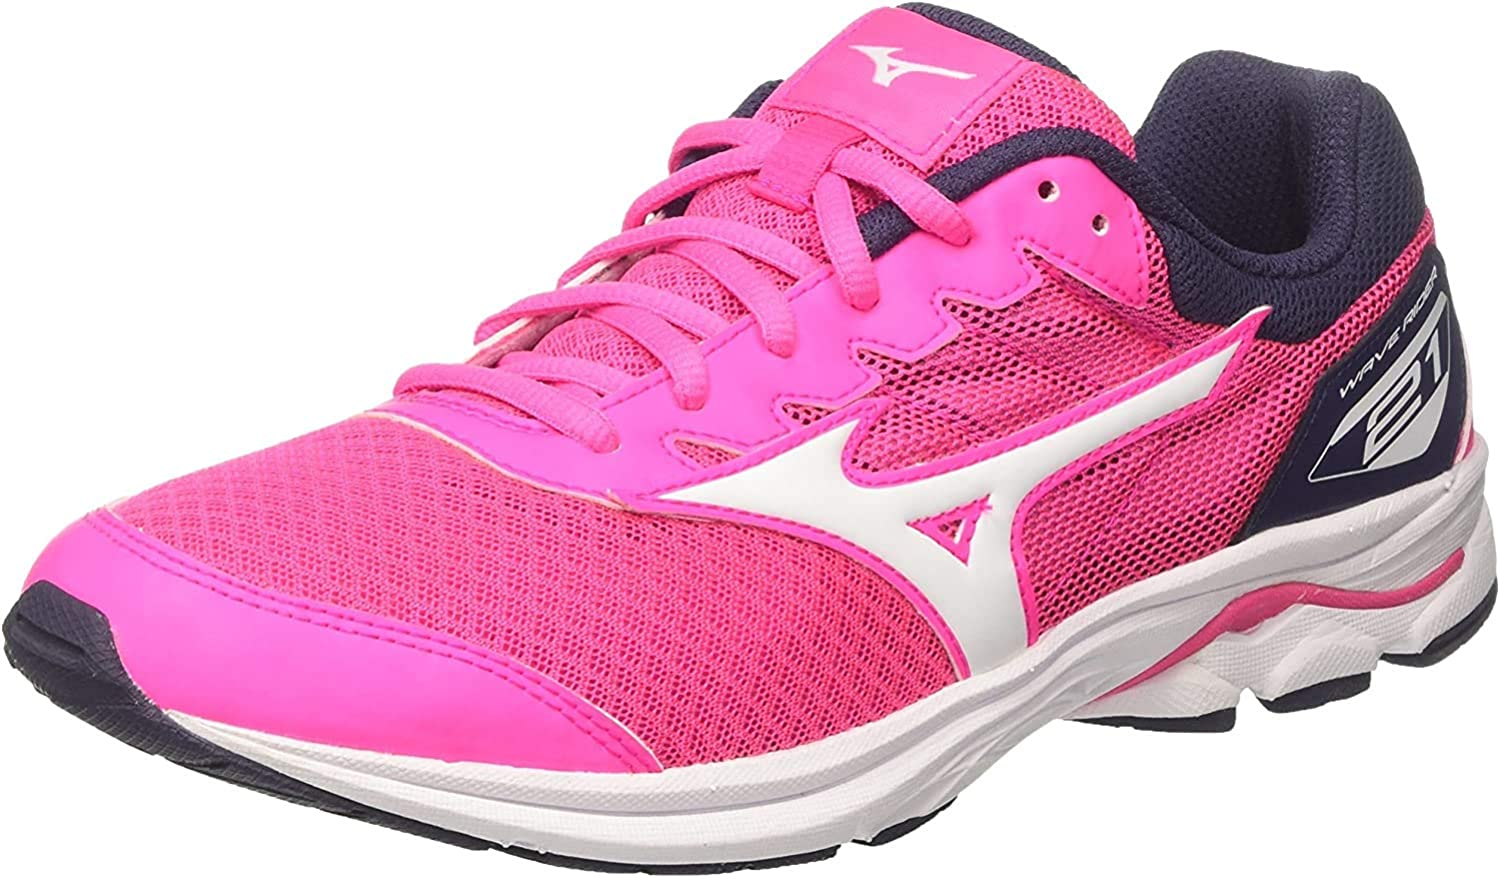 Mizuno Wave Rider 21 Jnr, Zapatillas de Running para Niños: Amazon ...